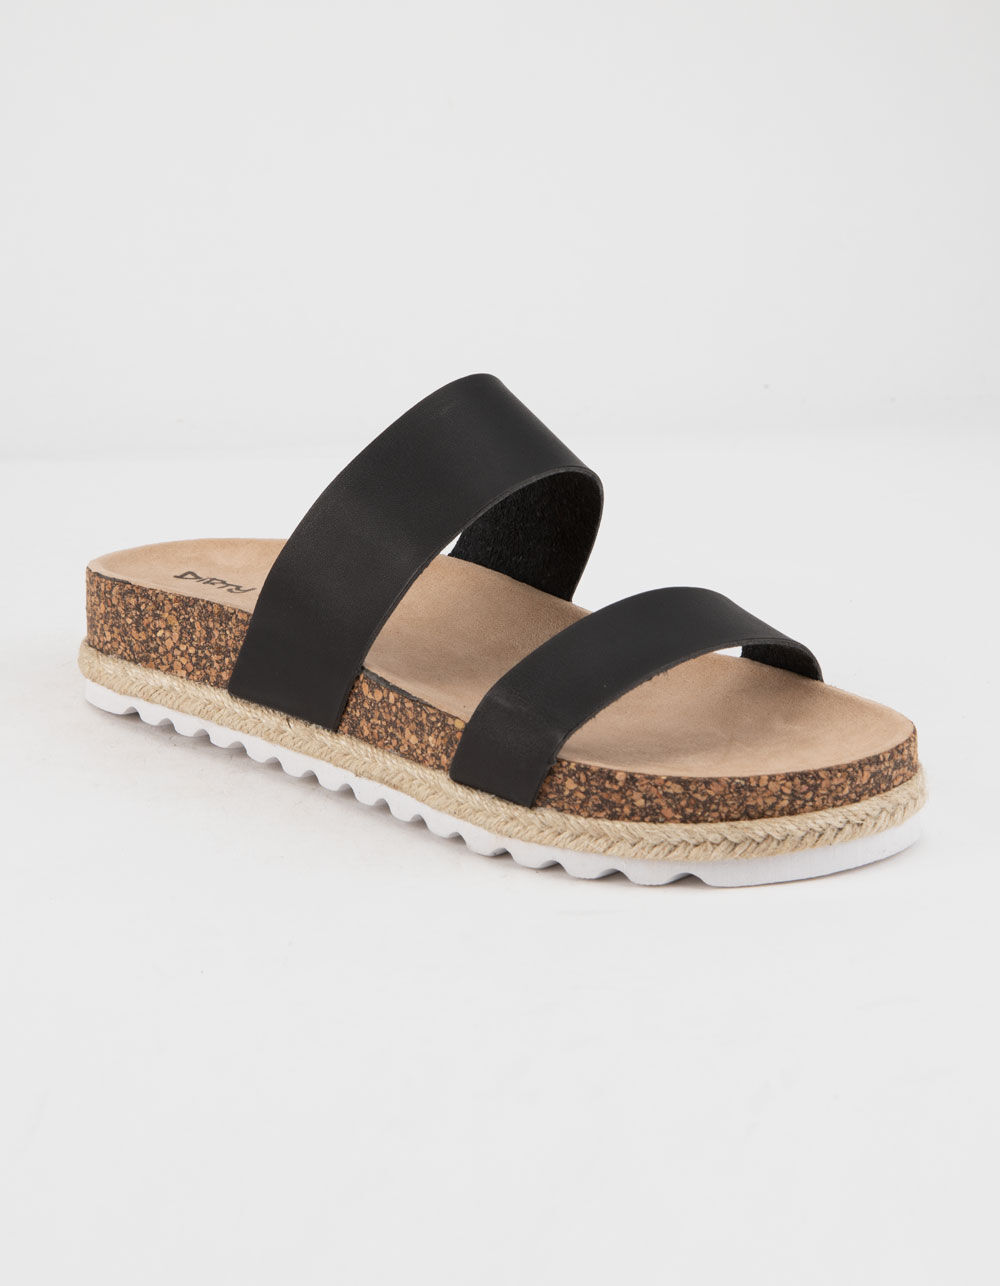 Image of DIRTY LAUNDRY DOUBLE PLAY BLACK ESPADRILLE FLATFORM SANDALS